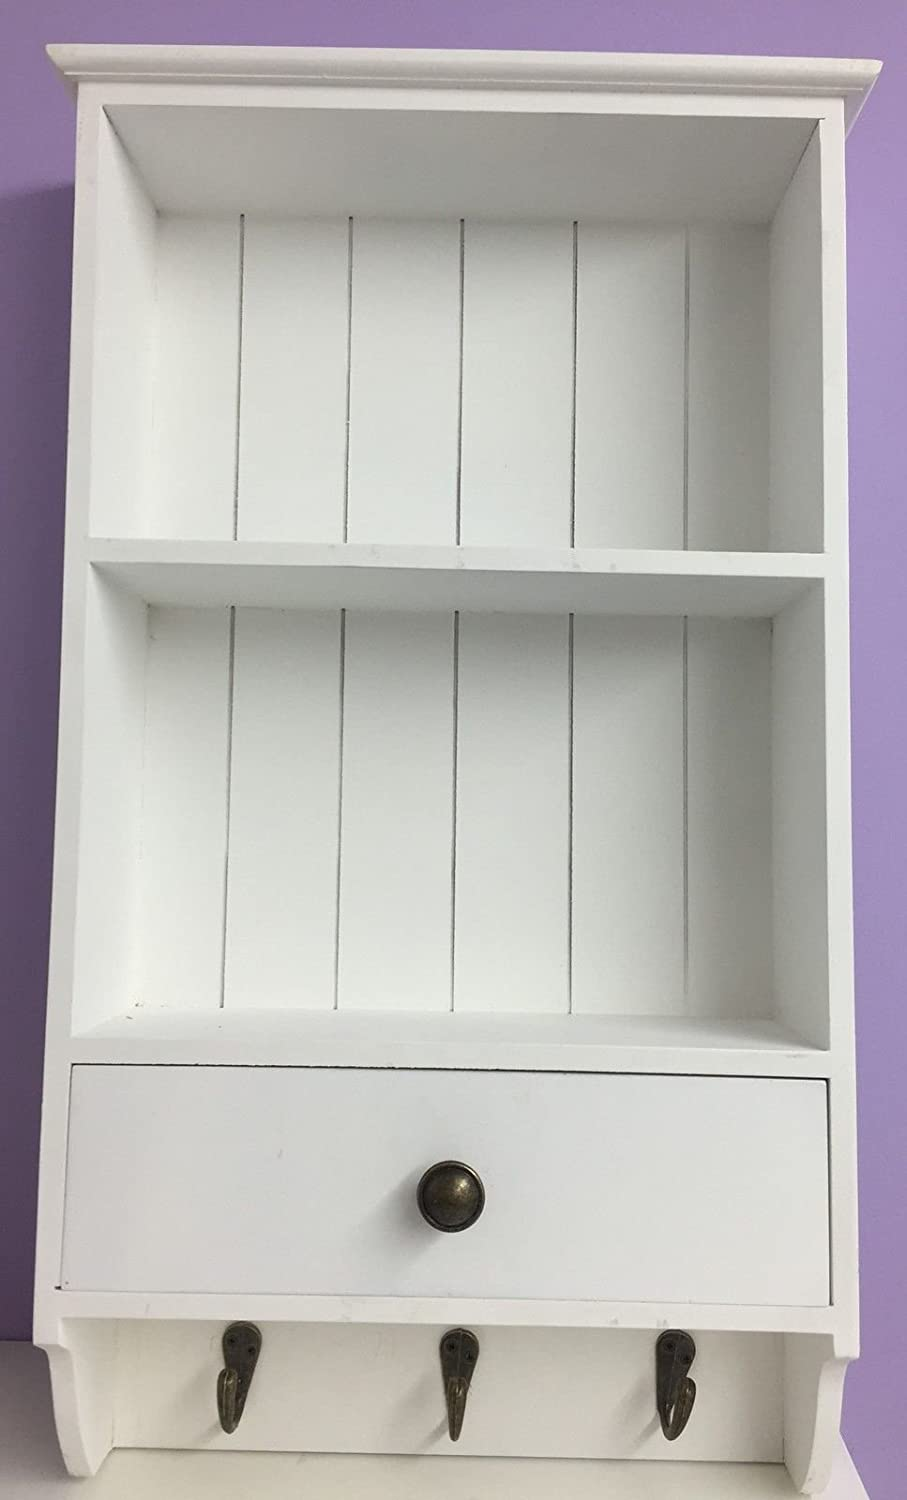 Shabby chic french style country wall shelf unit with hanging shabby chic white wood wall shelves amipublicfo Image collections